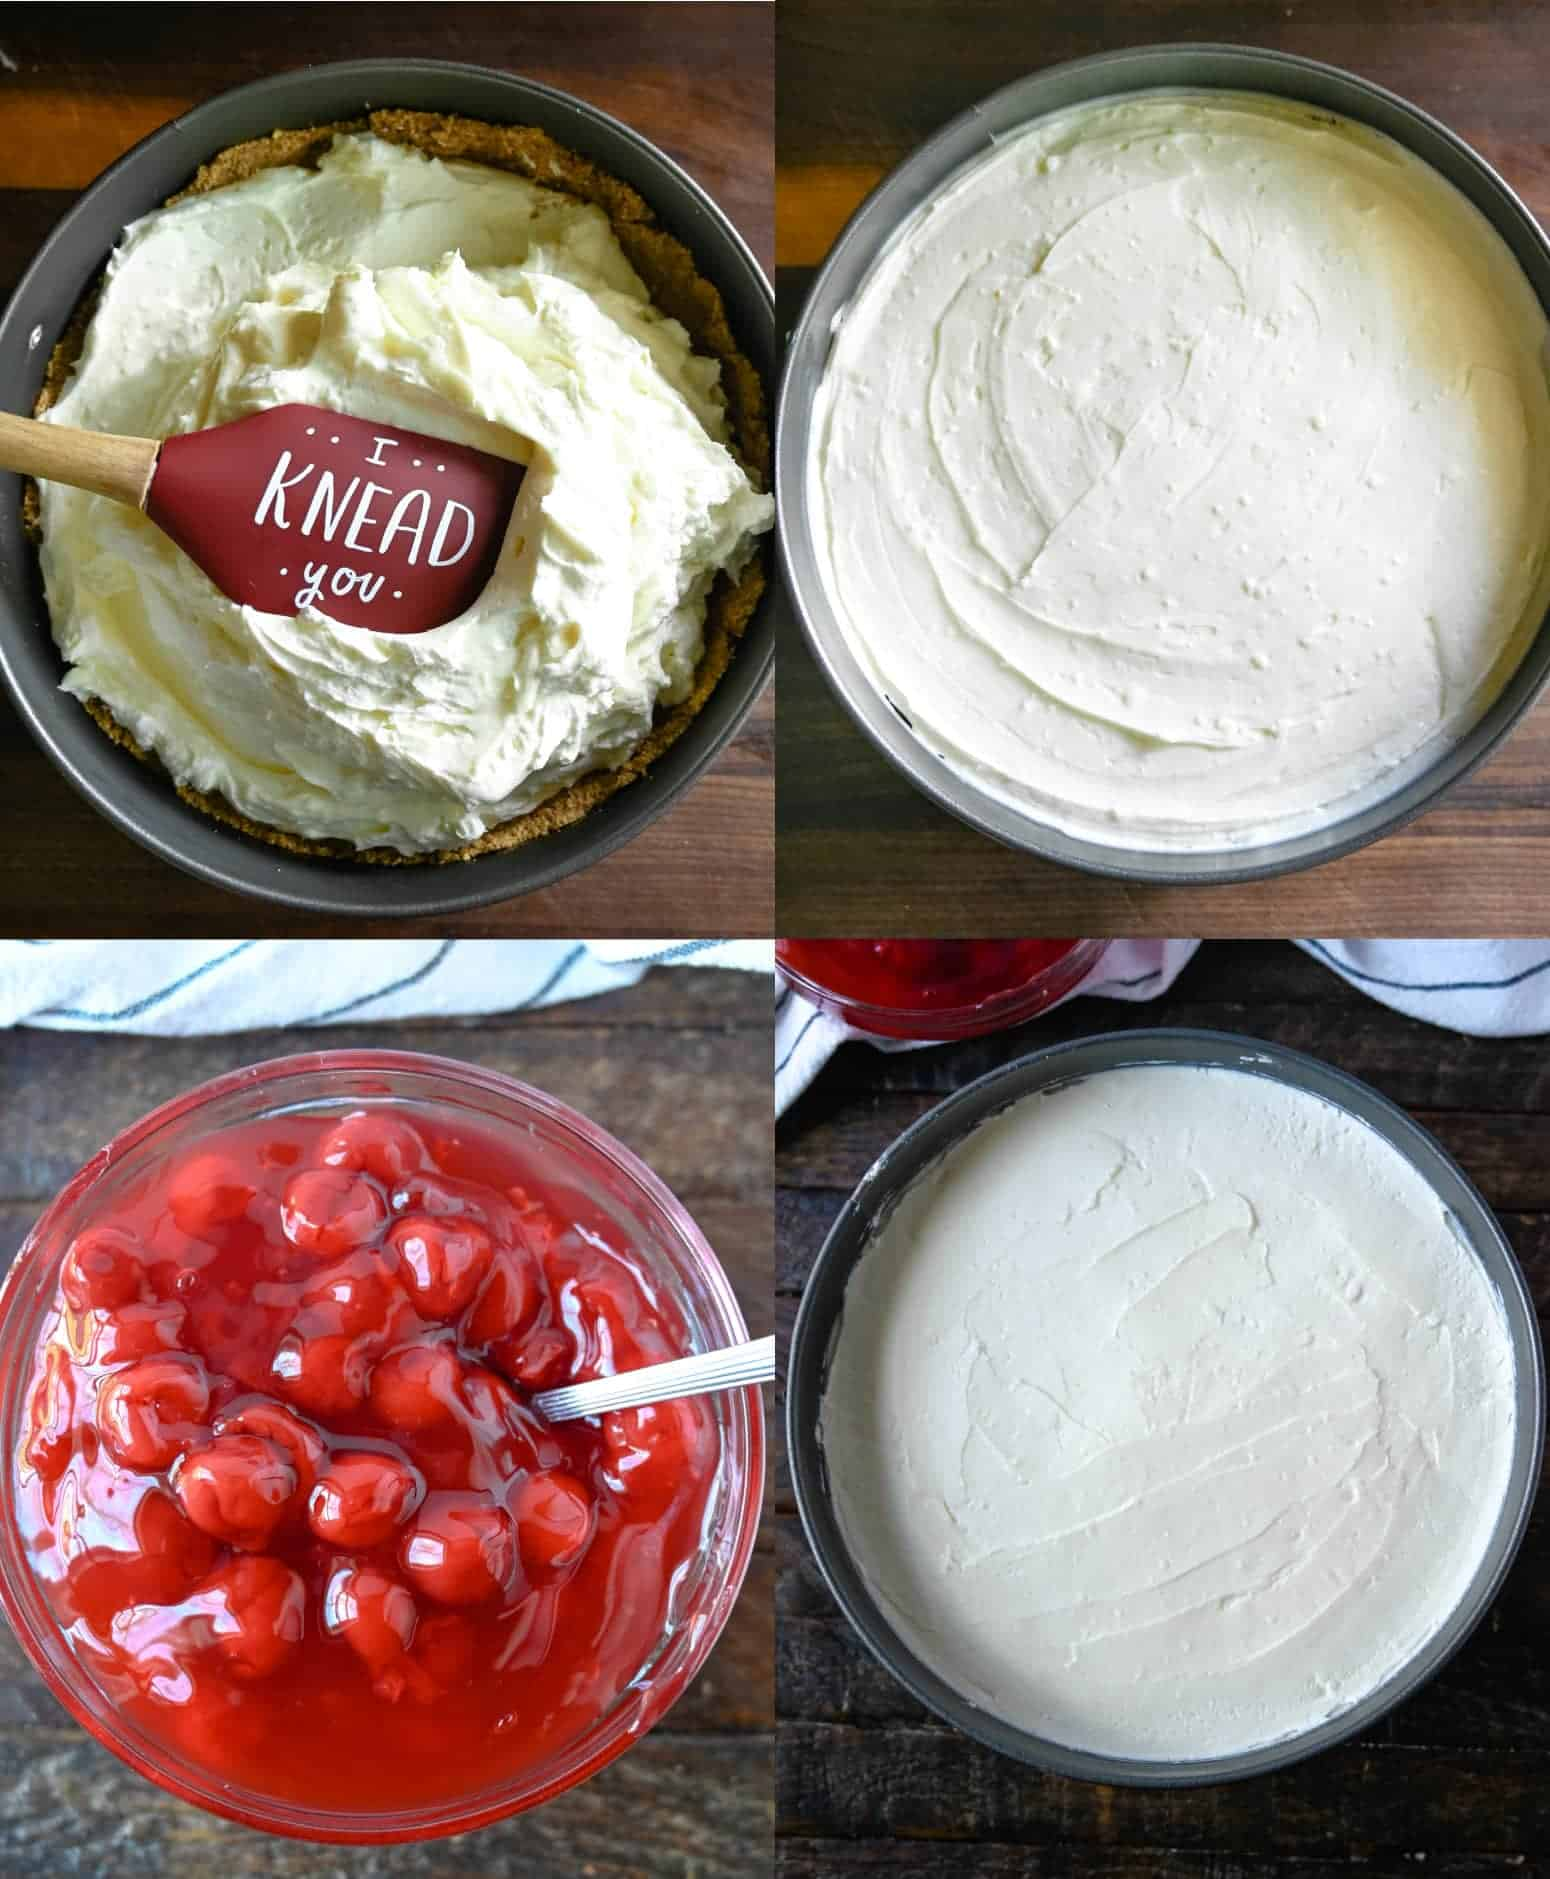 Four process photos. First one, cheesecake filling being spread into graham cracker crust. Second one, filling all spread into the spring foam pan. Third one, a bowl of canned cherries. Fourth one, cheesecake chilled and ready to decorate.